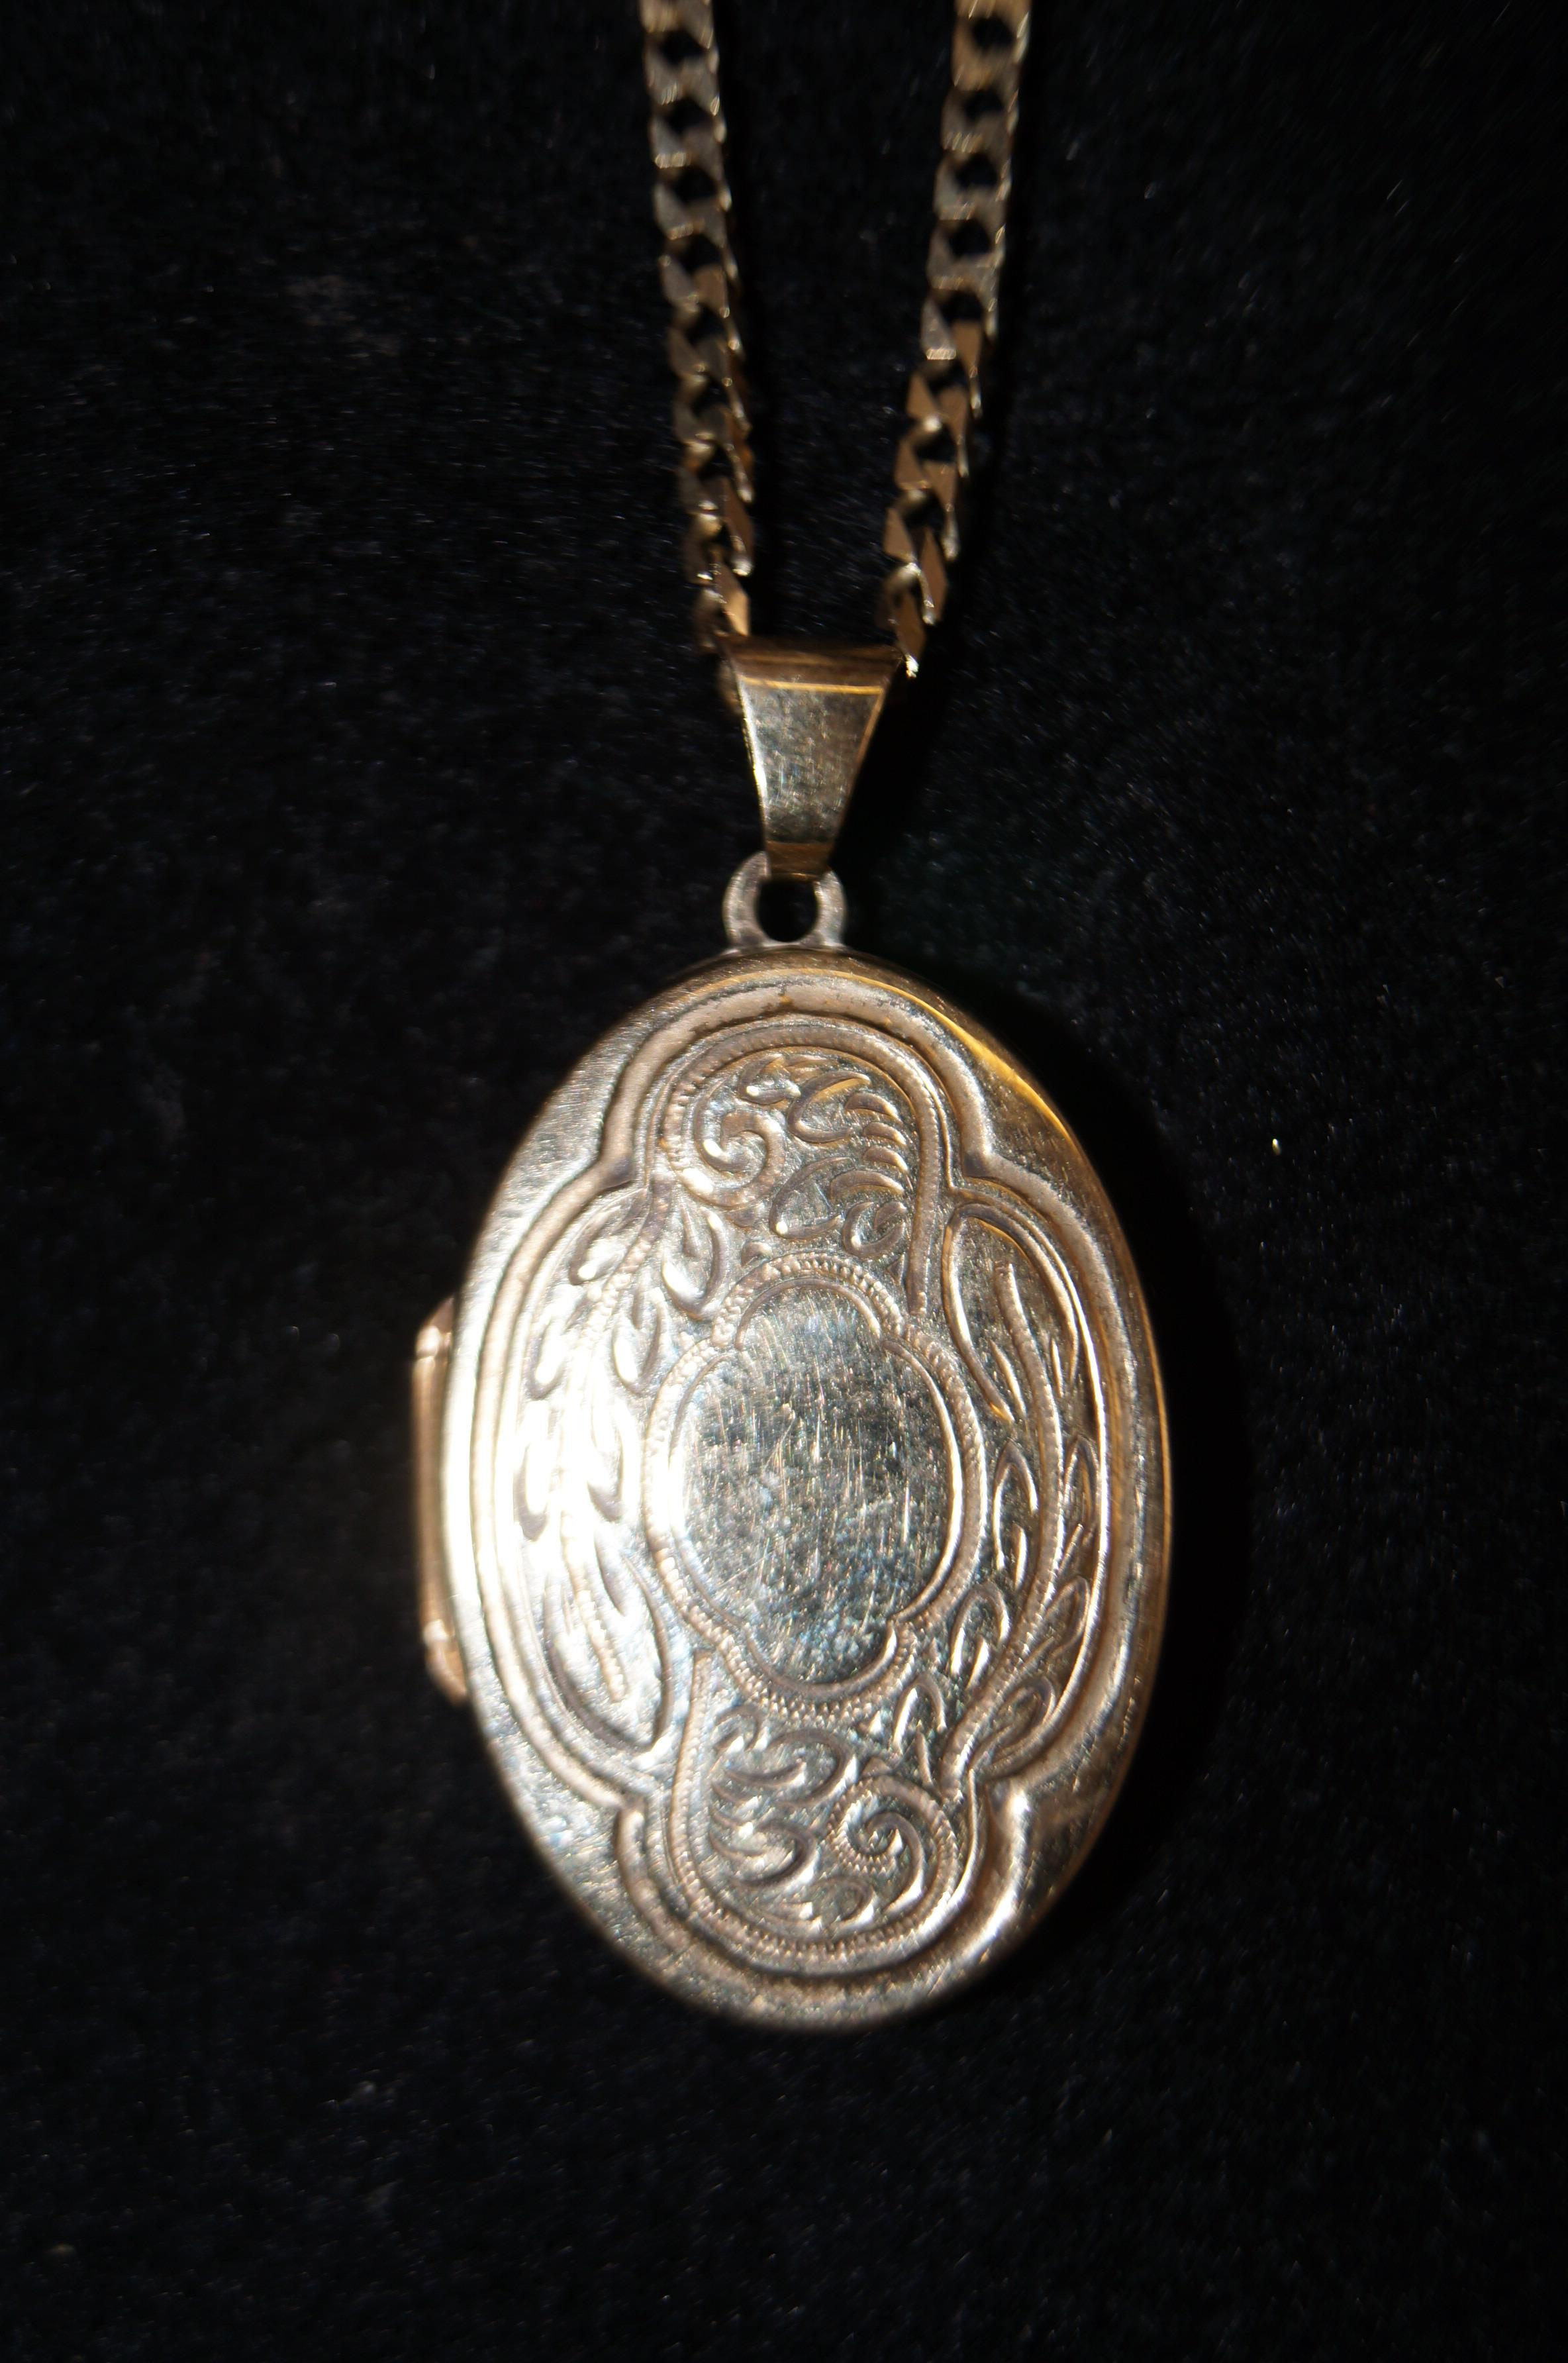 Lot 41 - 9ct Gold locket & necklace Weight 9.8g